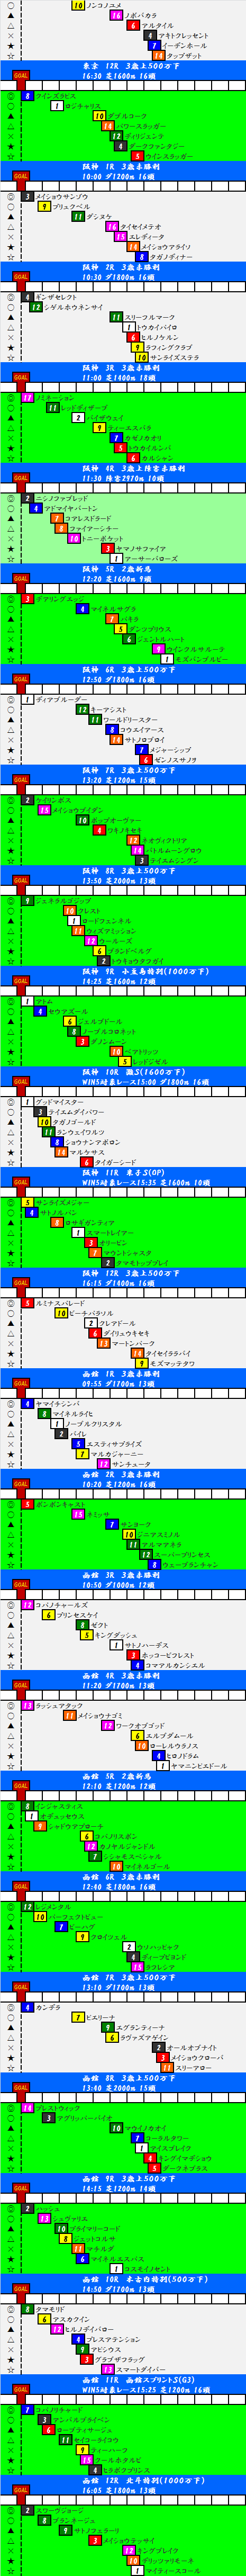 2015062102.png